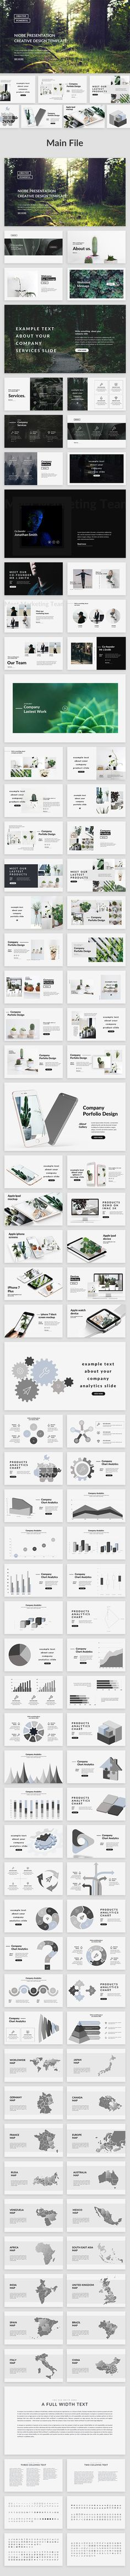 Niobe  Creative — Keynote KEY #business #professional • Download ➝ https://graphicriver.net/item/niobe-creative-keynote-template/19592214?ref=pxcr